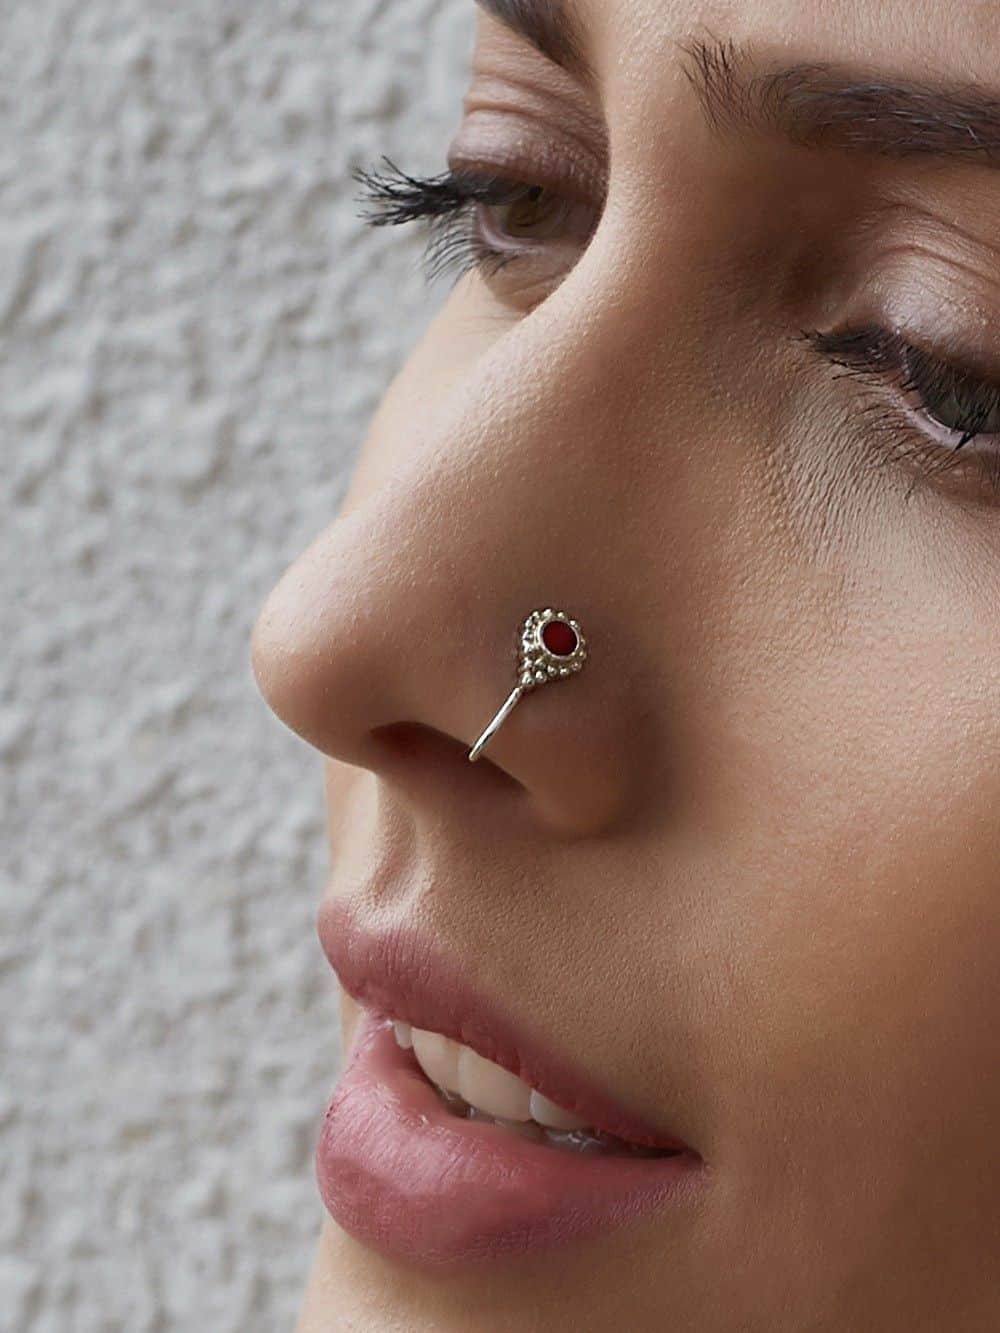 Types of Nostrils Piercing Jewelry